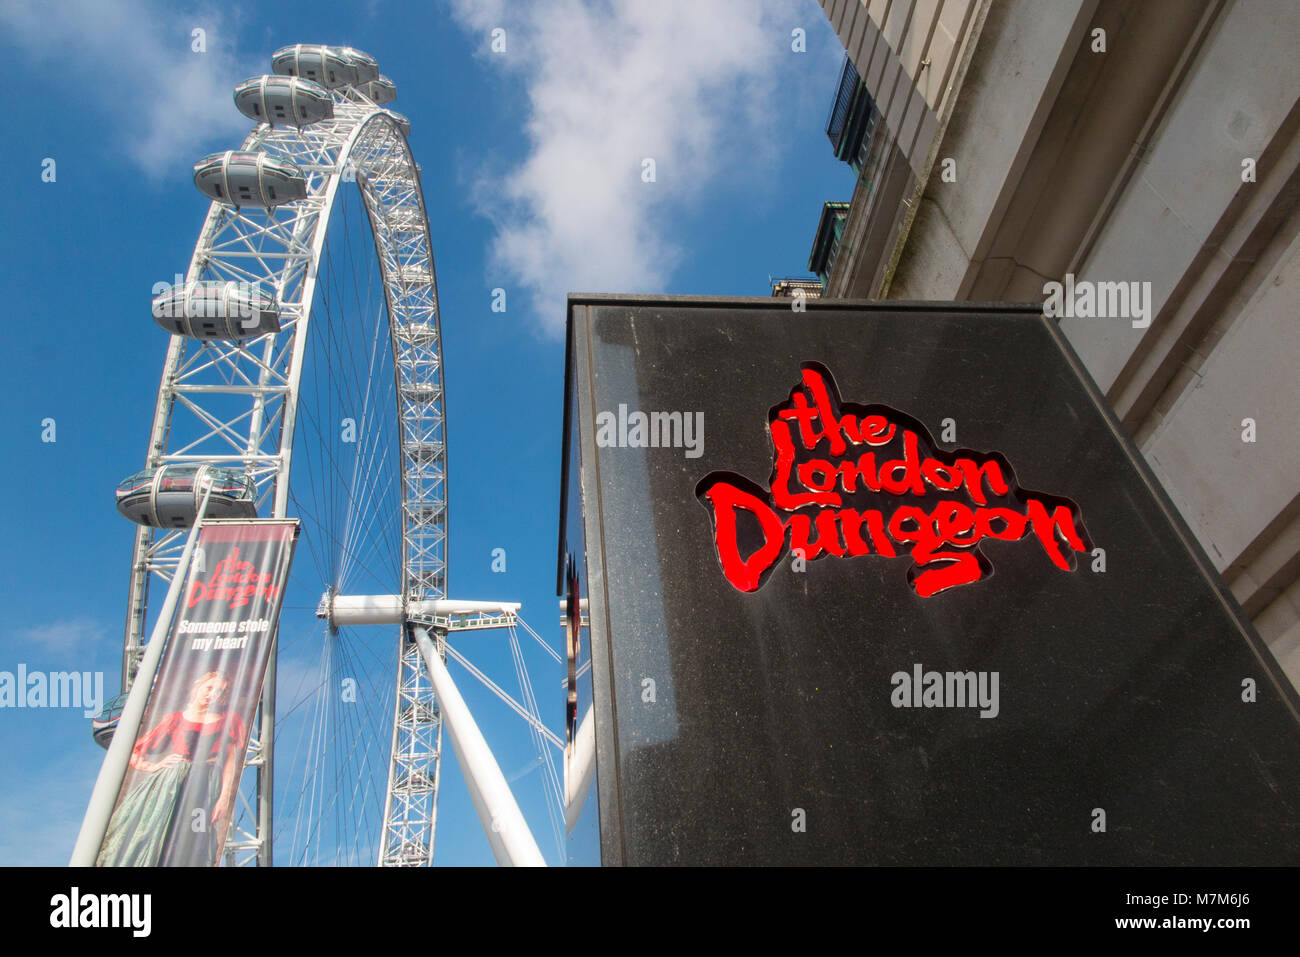 Tourism attractions in London - The London Dungeon and The London Eye - Stock Image